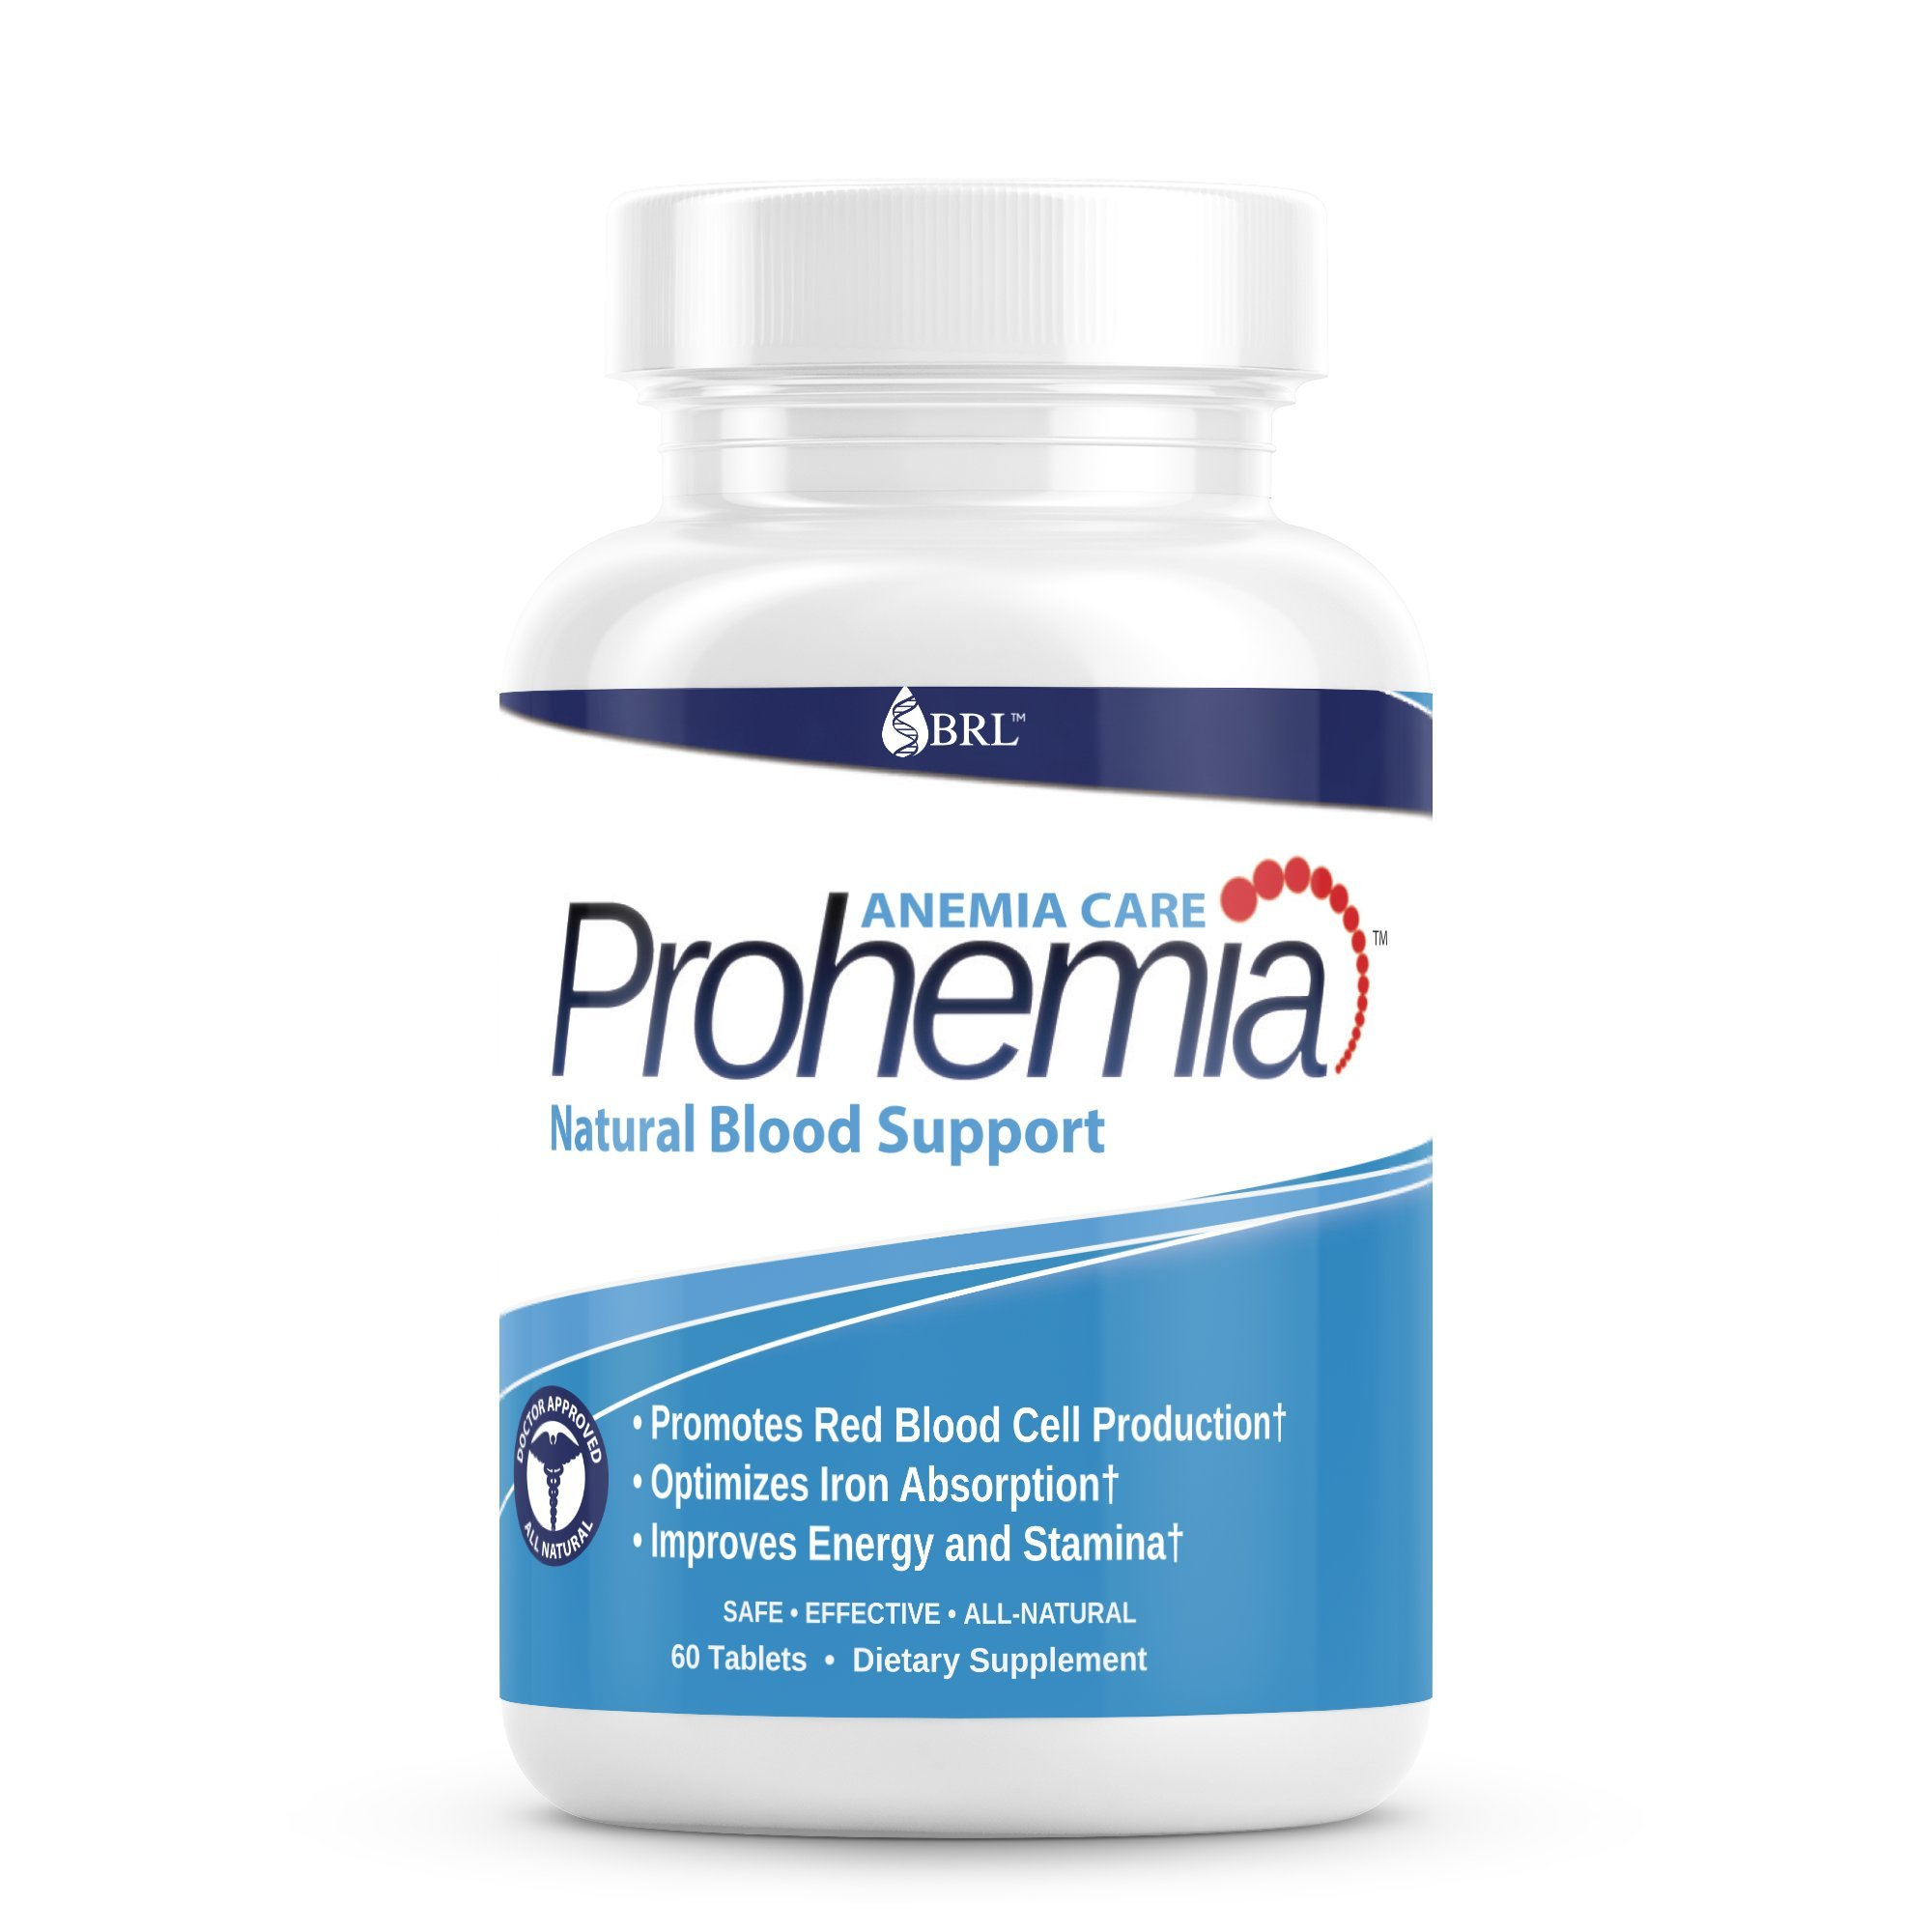 Prohemia Natural Blood Builder and Support for Healthy Iron Levels, Oxygen and Red Blood Cells Production, Gluten-Free, Non-GMO - 60 Tablets... by Prohemia